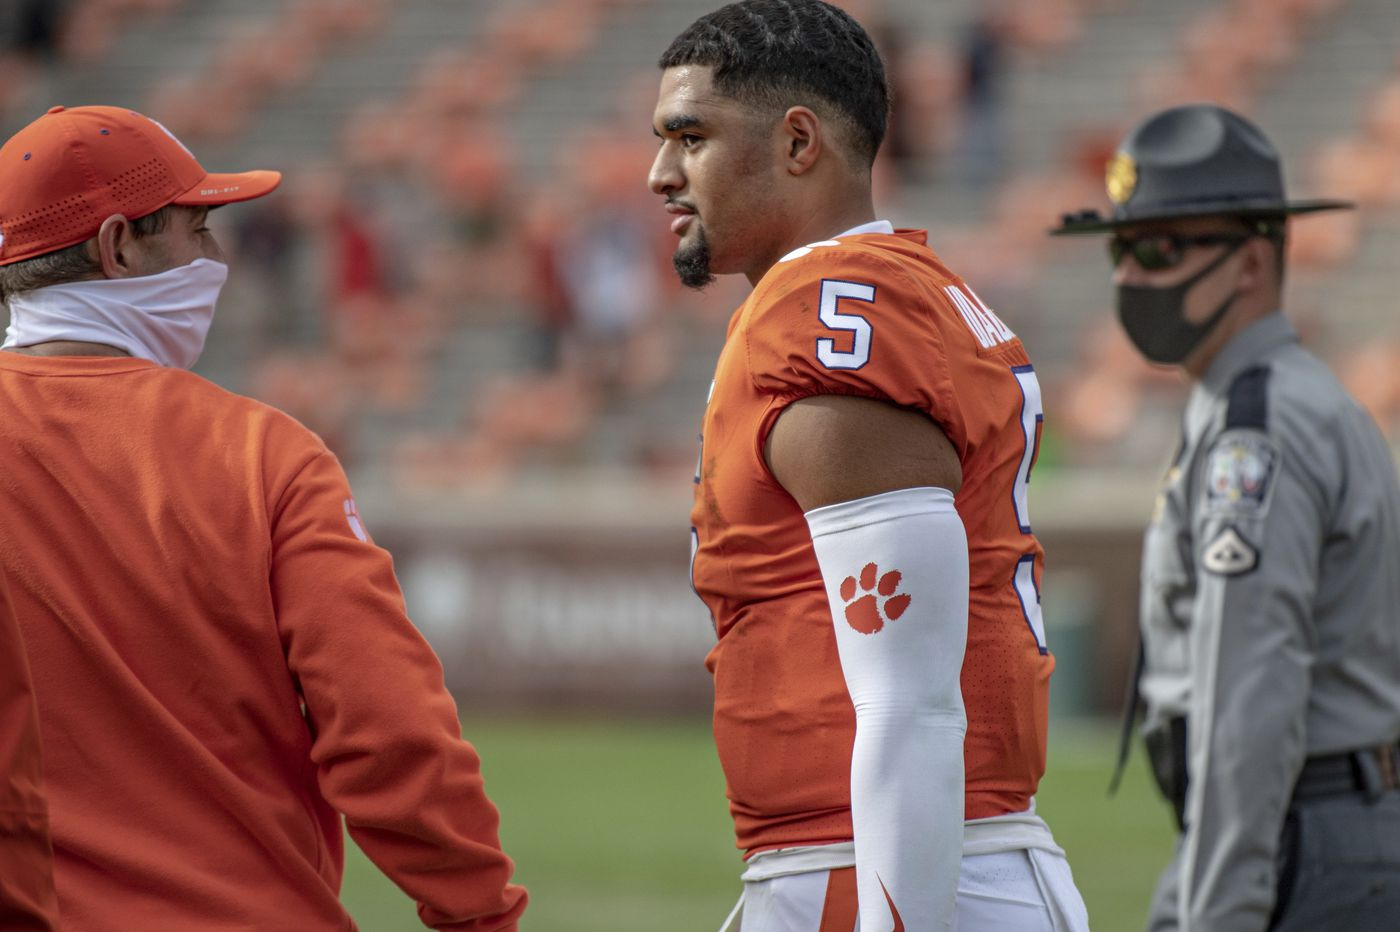 Clemson vs. Notre Dame highlights college football weekend upended by two Pac-12 cancellations due to COVID-19